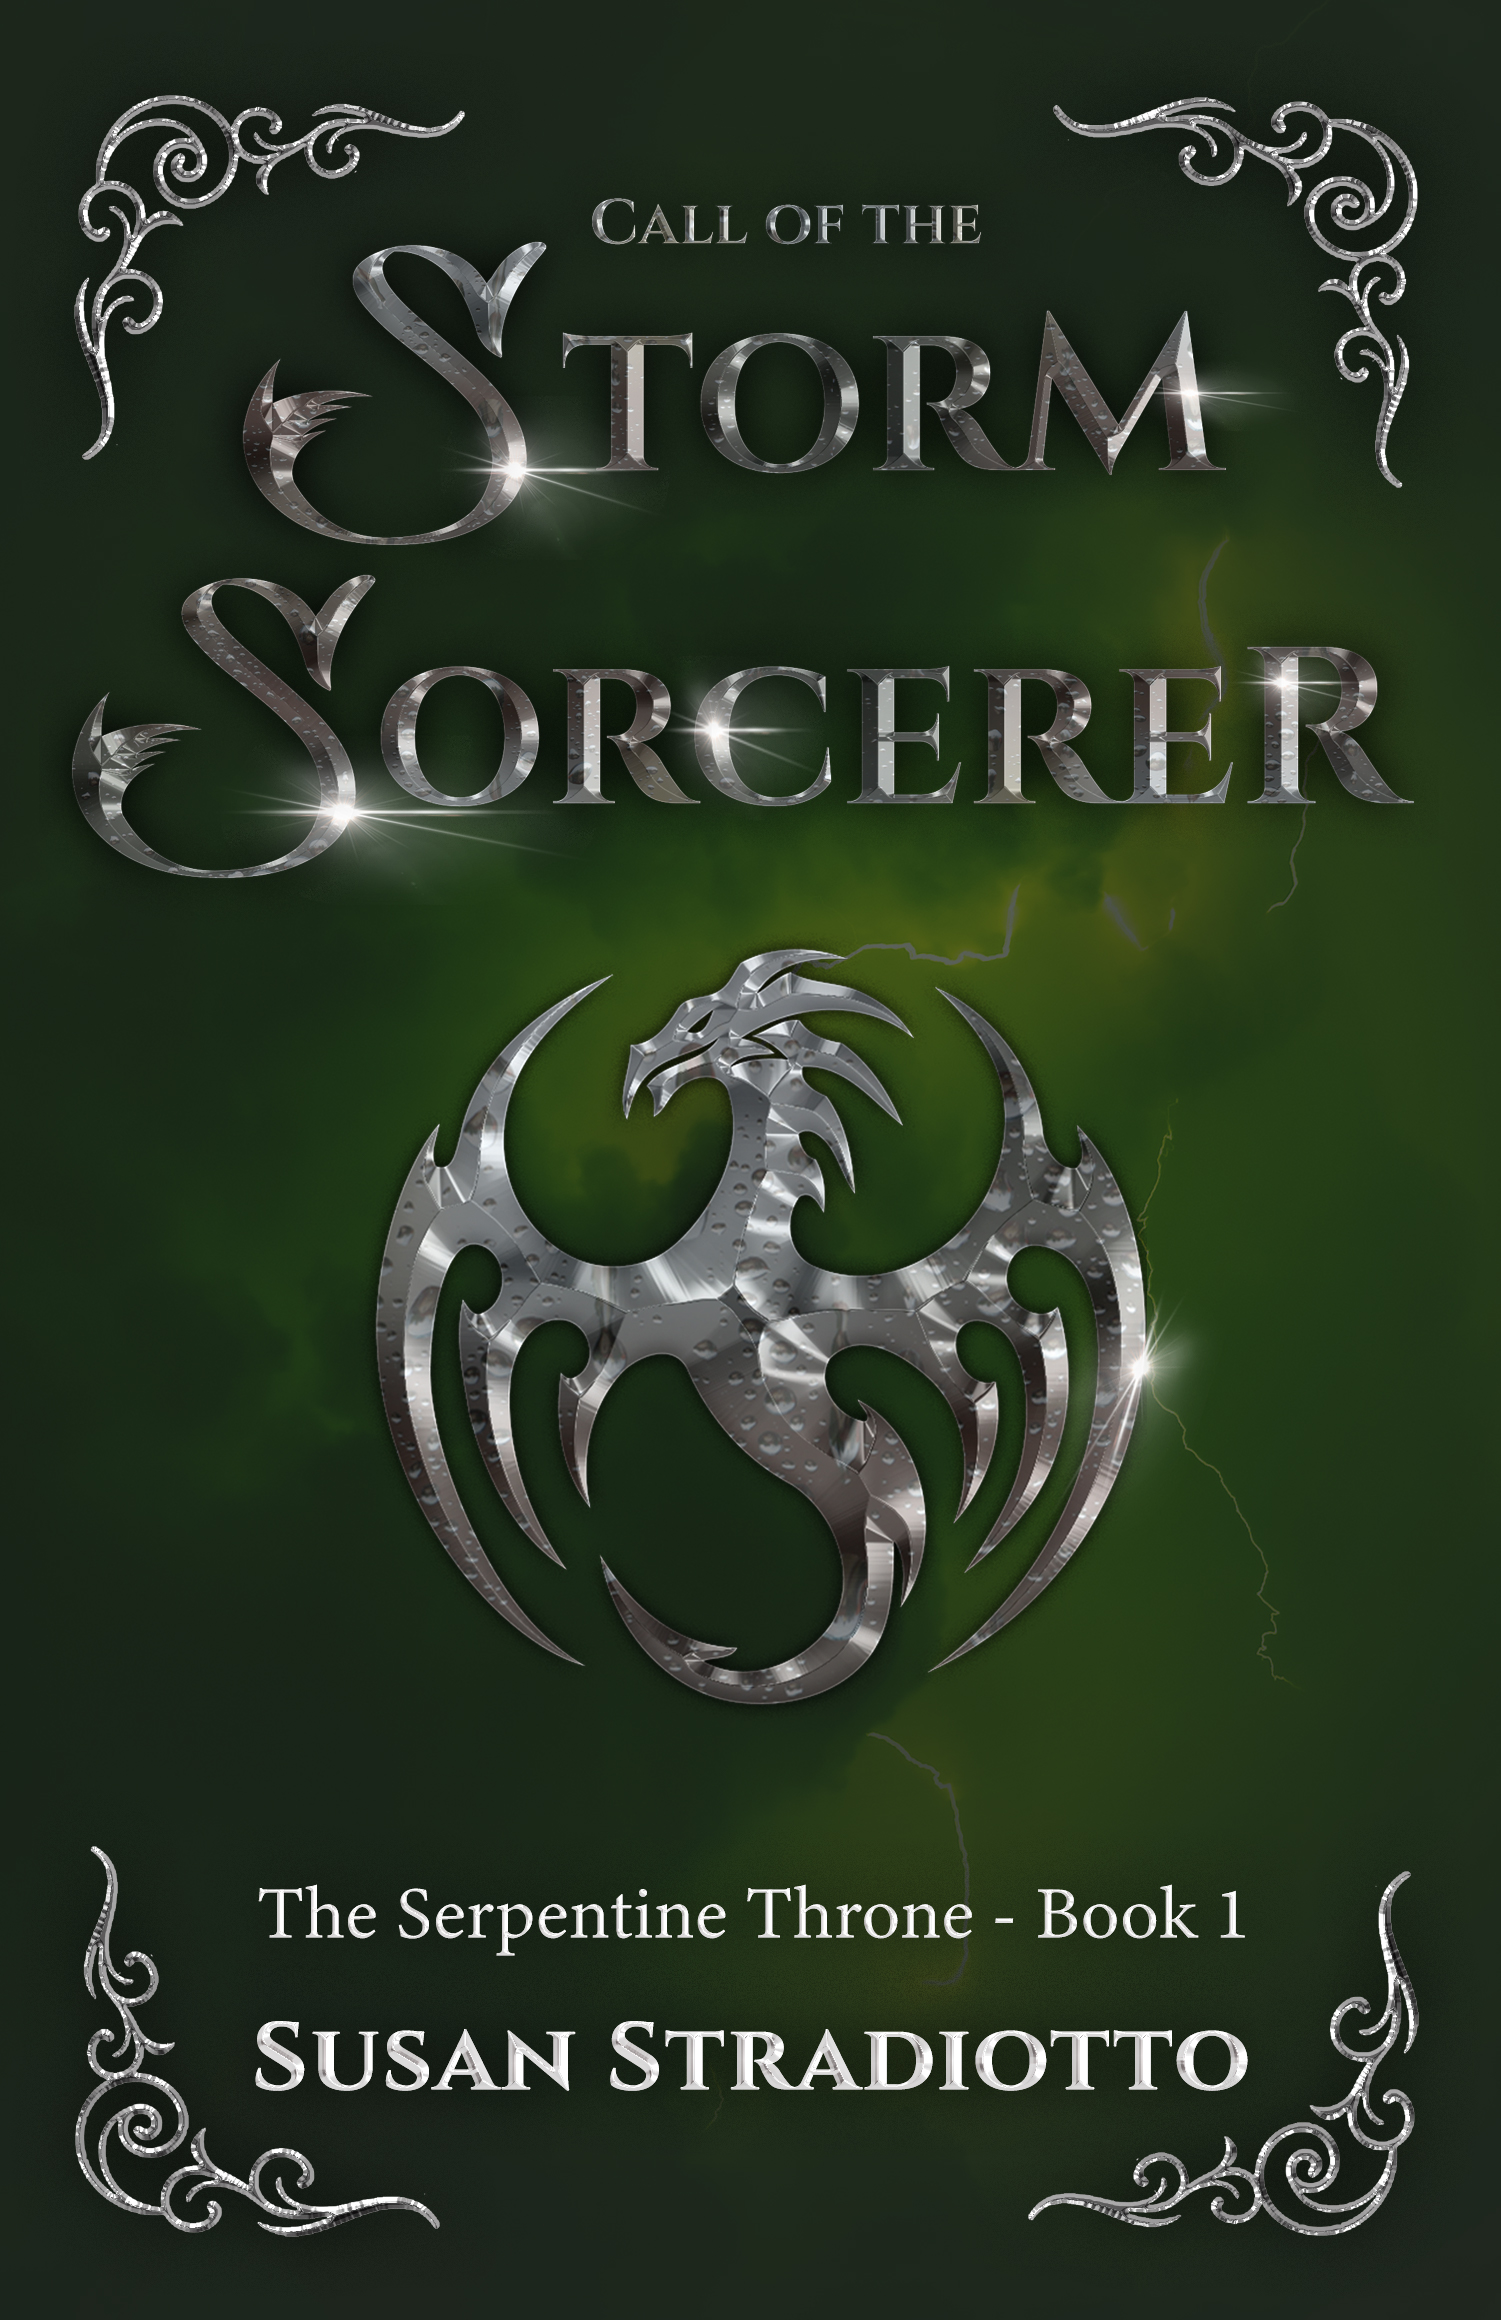 Call of the Storm Sorcerer